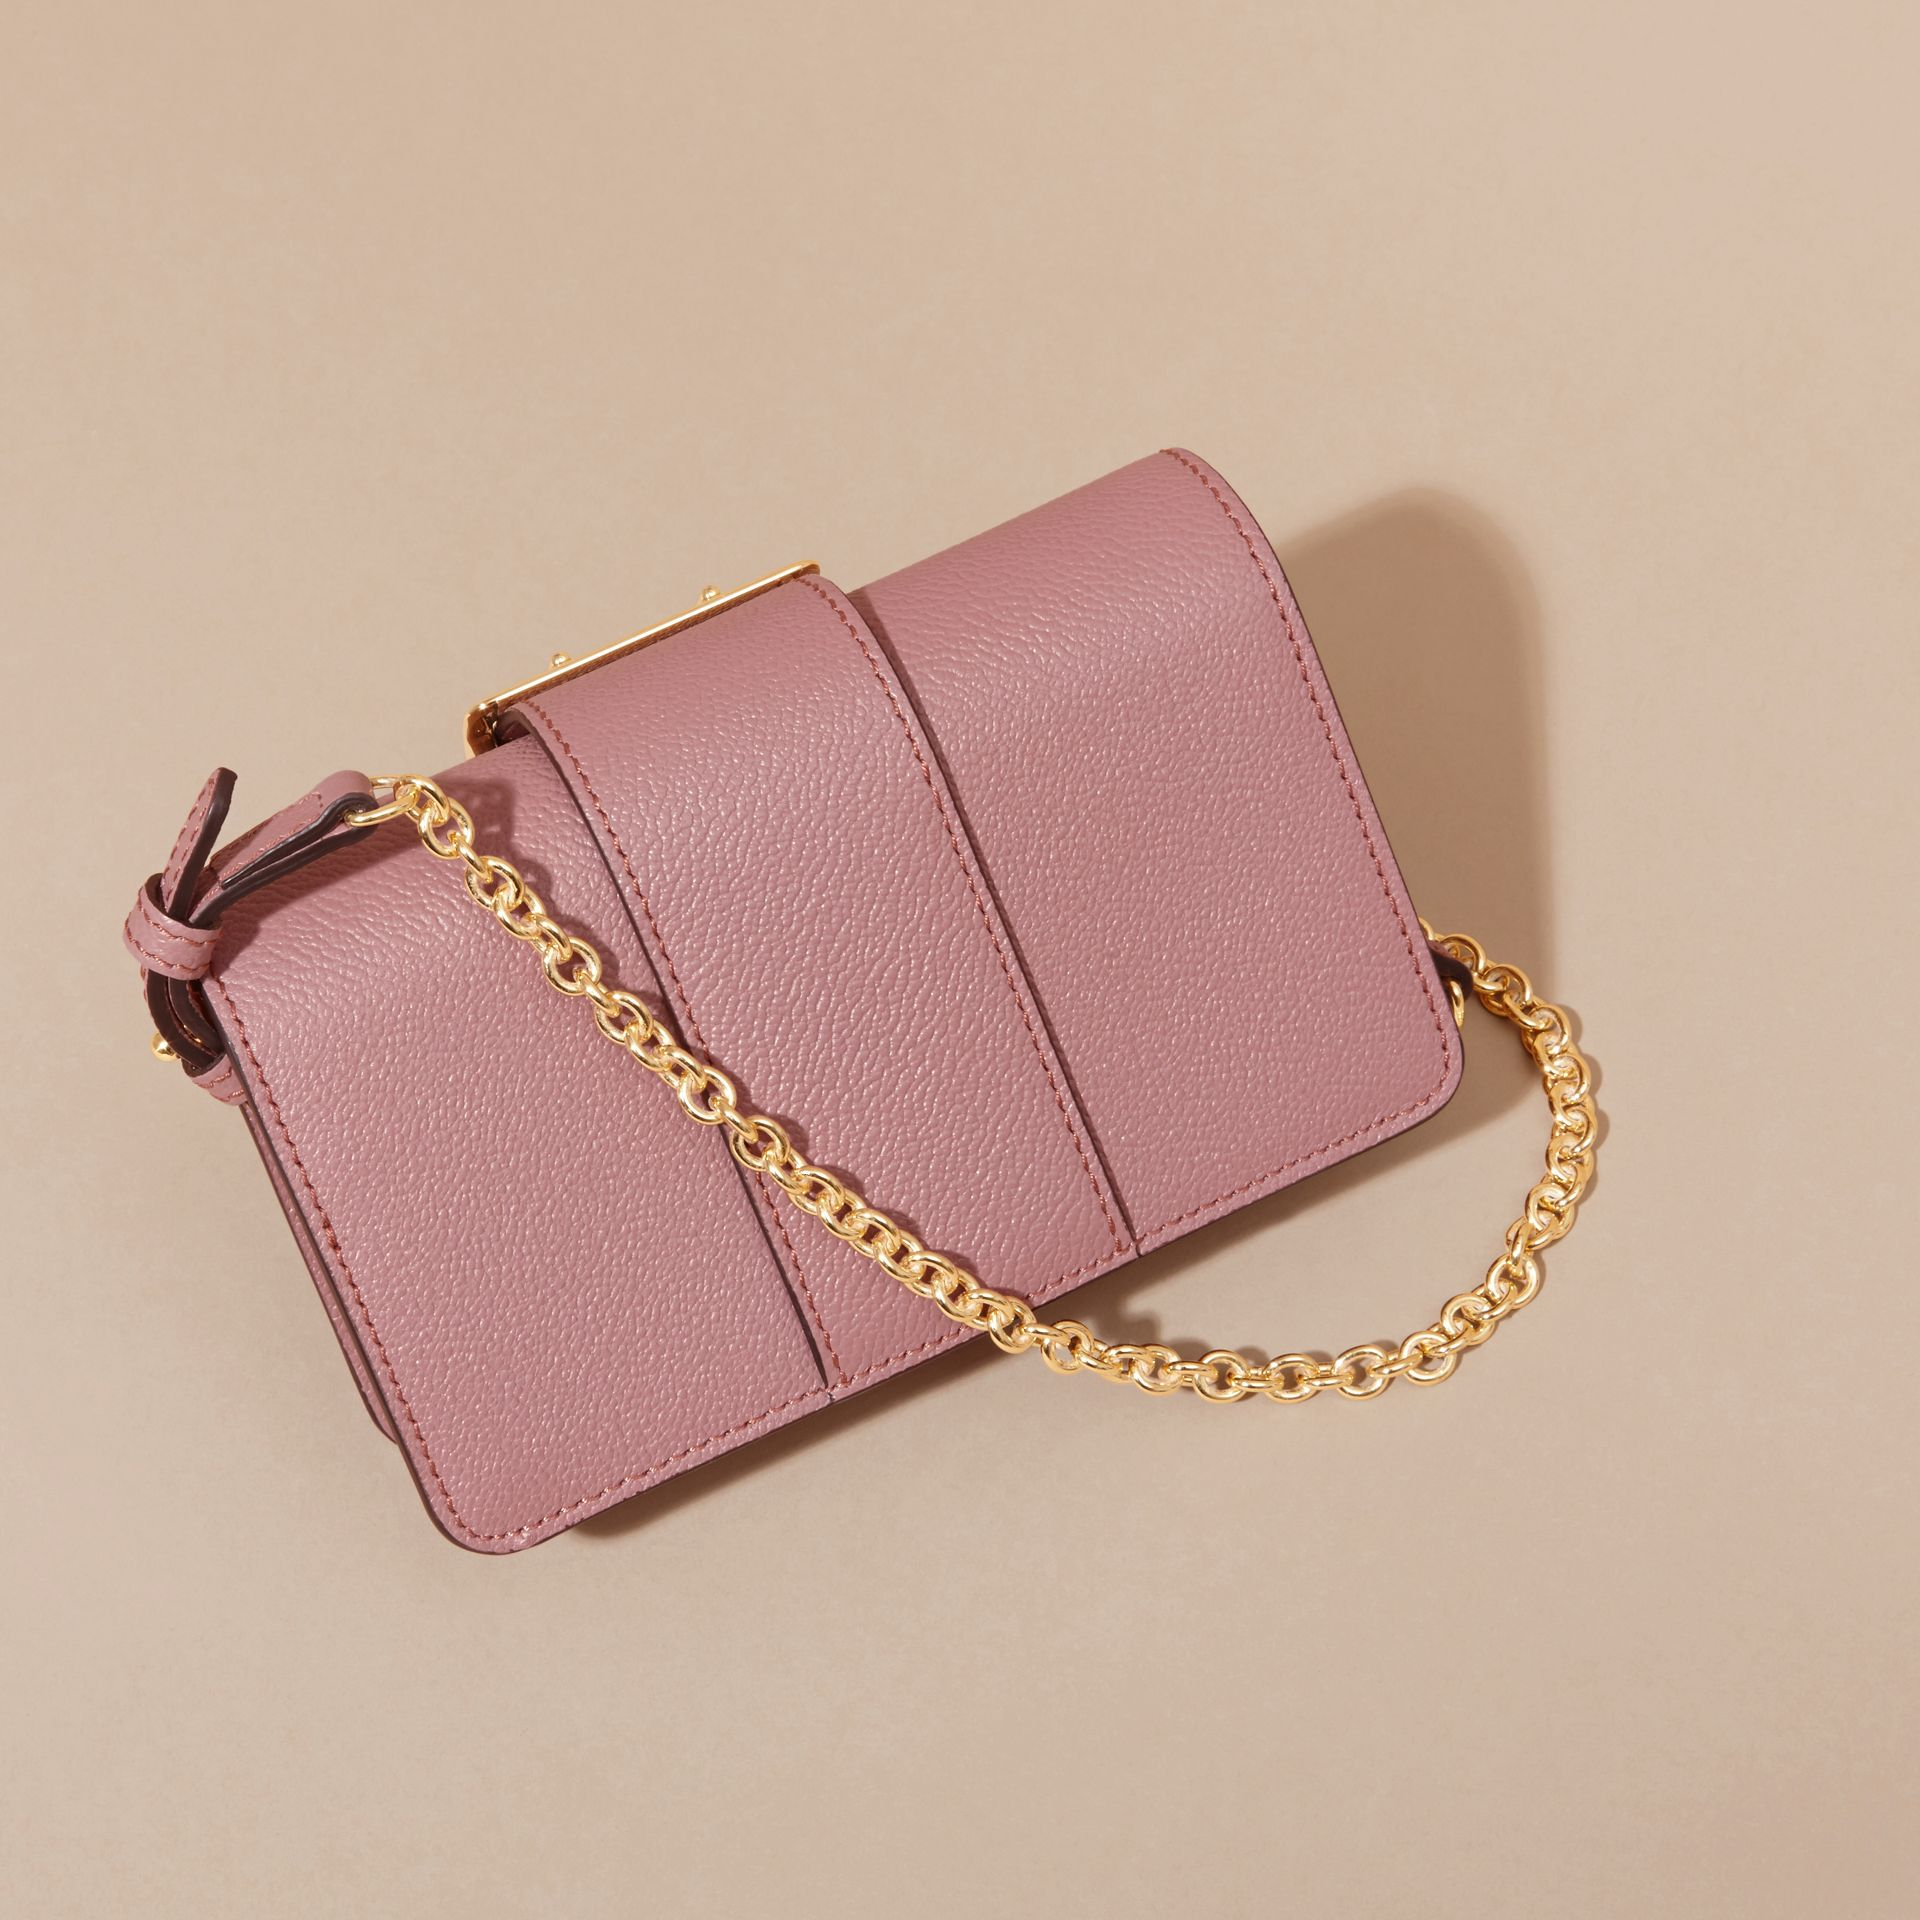 The Mini Buckle Bag in Grainy Leather in Dusty Pink - Women | Burberry Canada - gallery image 5